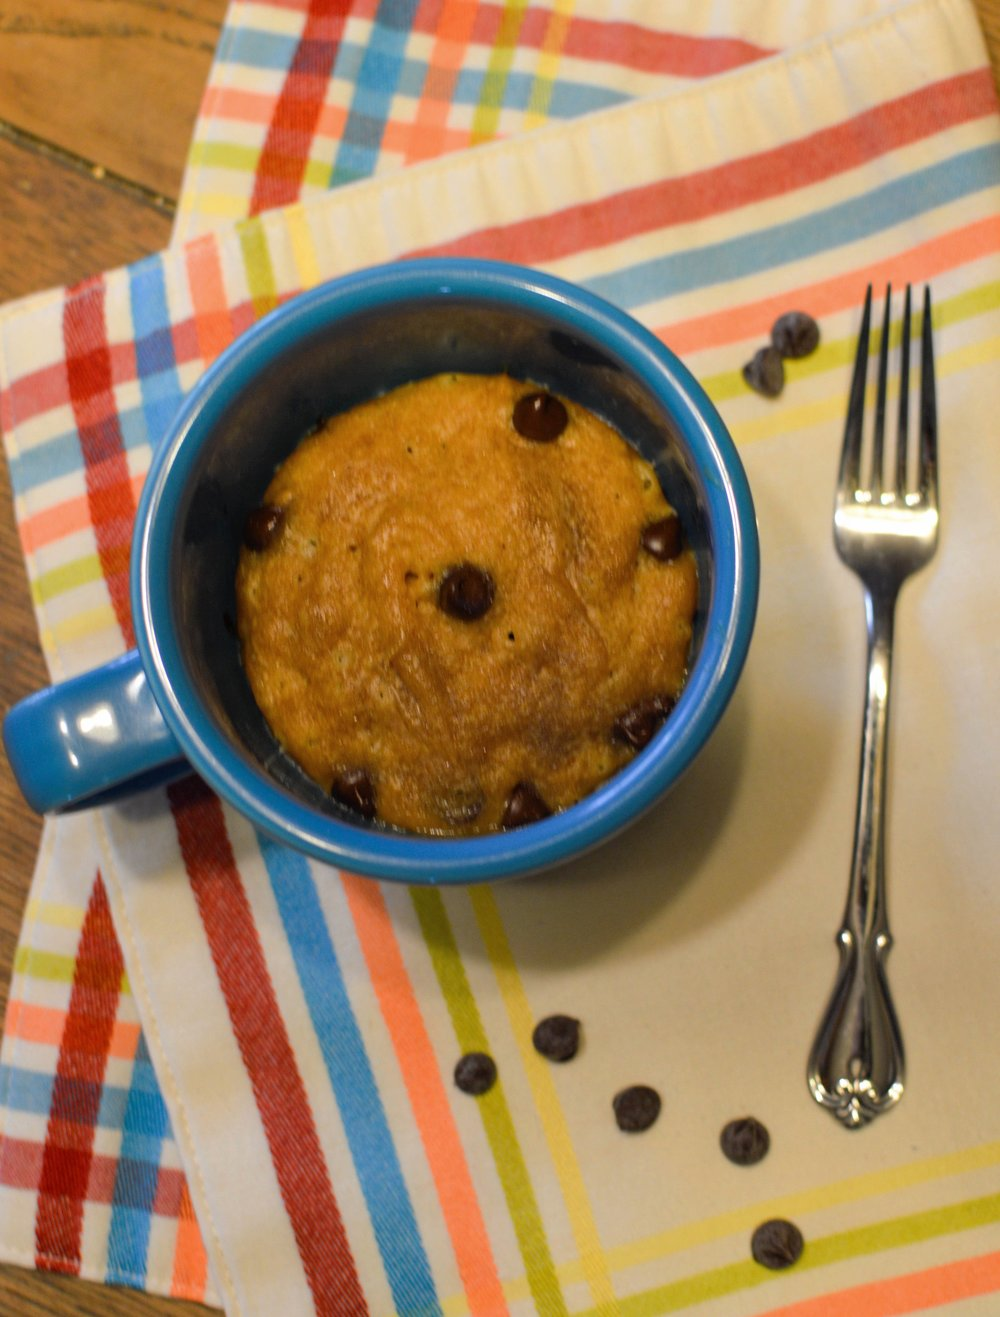 The Peanut Butter & Hey Mug Cake - For every peanut butter loving person whose needing a sugar fix without any lingering tempting morsels in the kitchen.